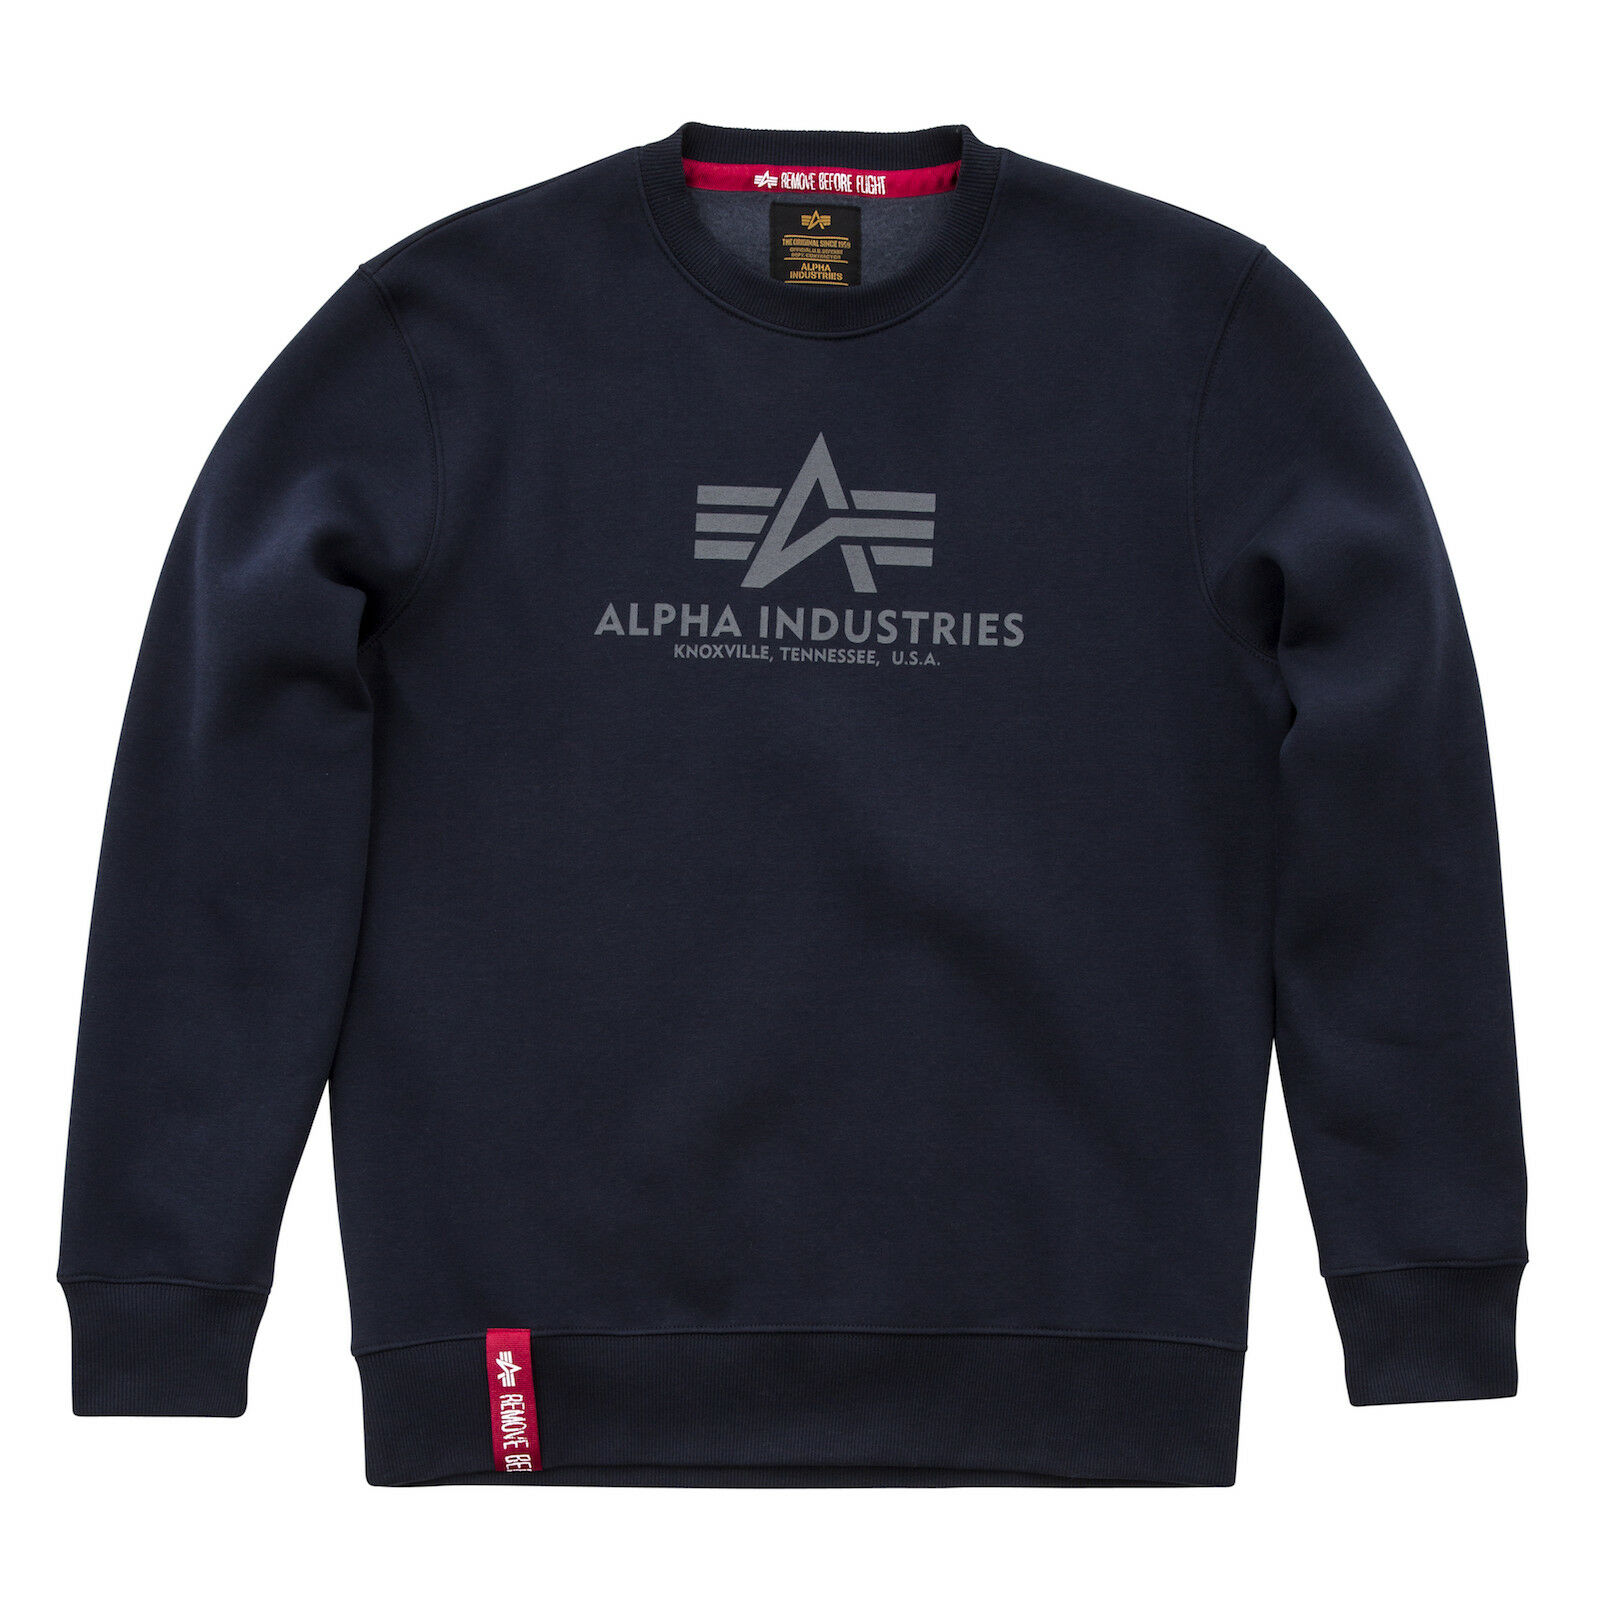 ALPHA INDUSTRIES Sweatshirt  Basic Sweater    Rep.Blau 07 (178302) classic Logo | Haltbar